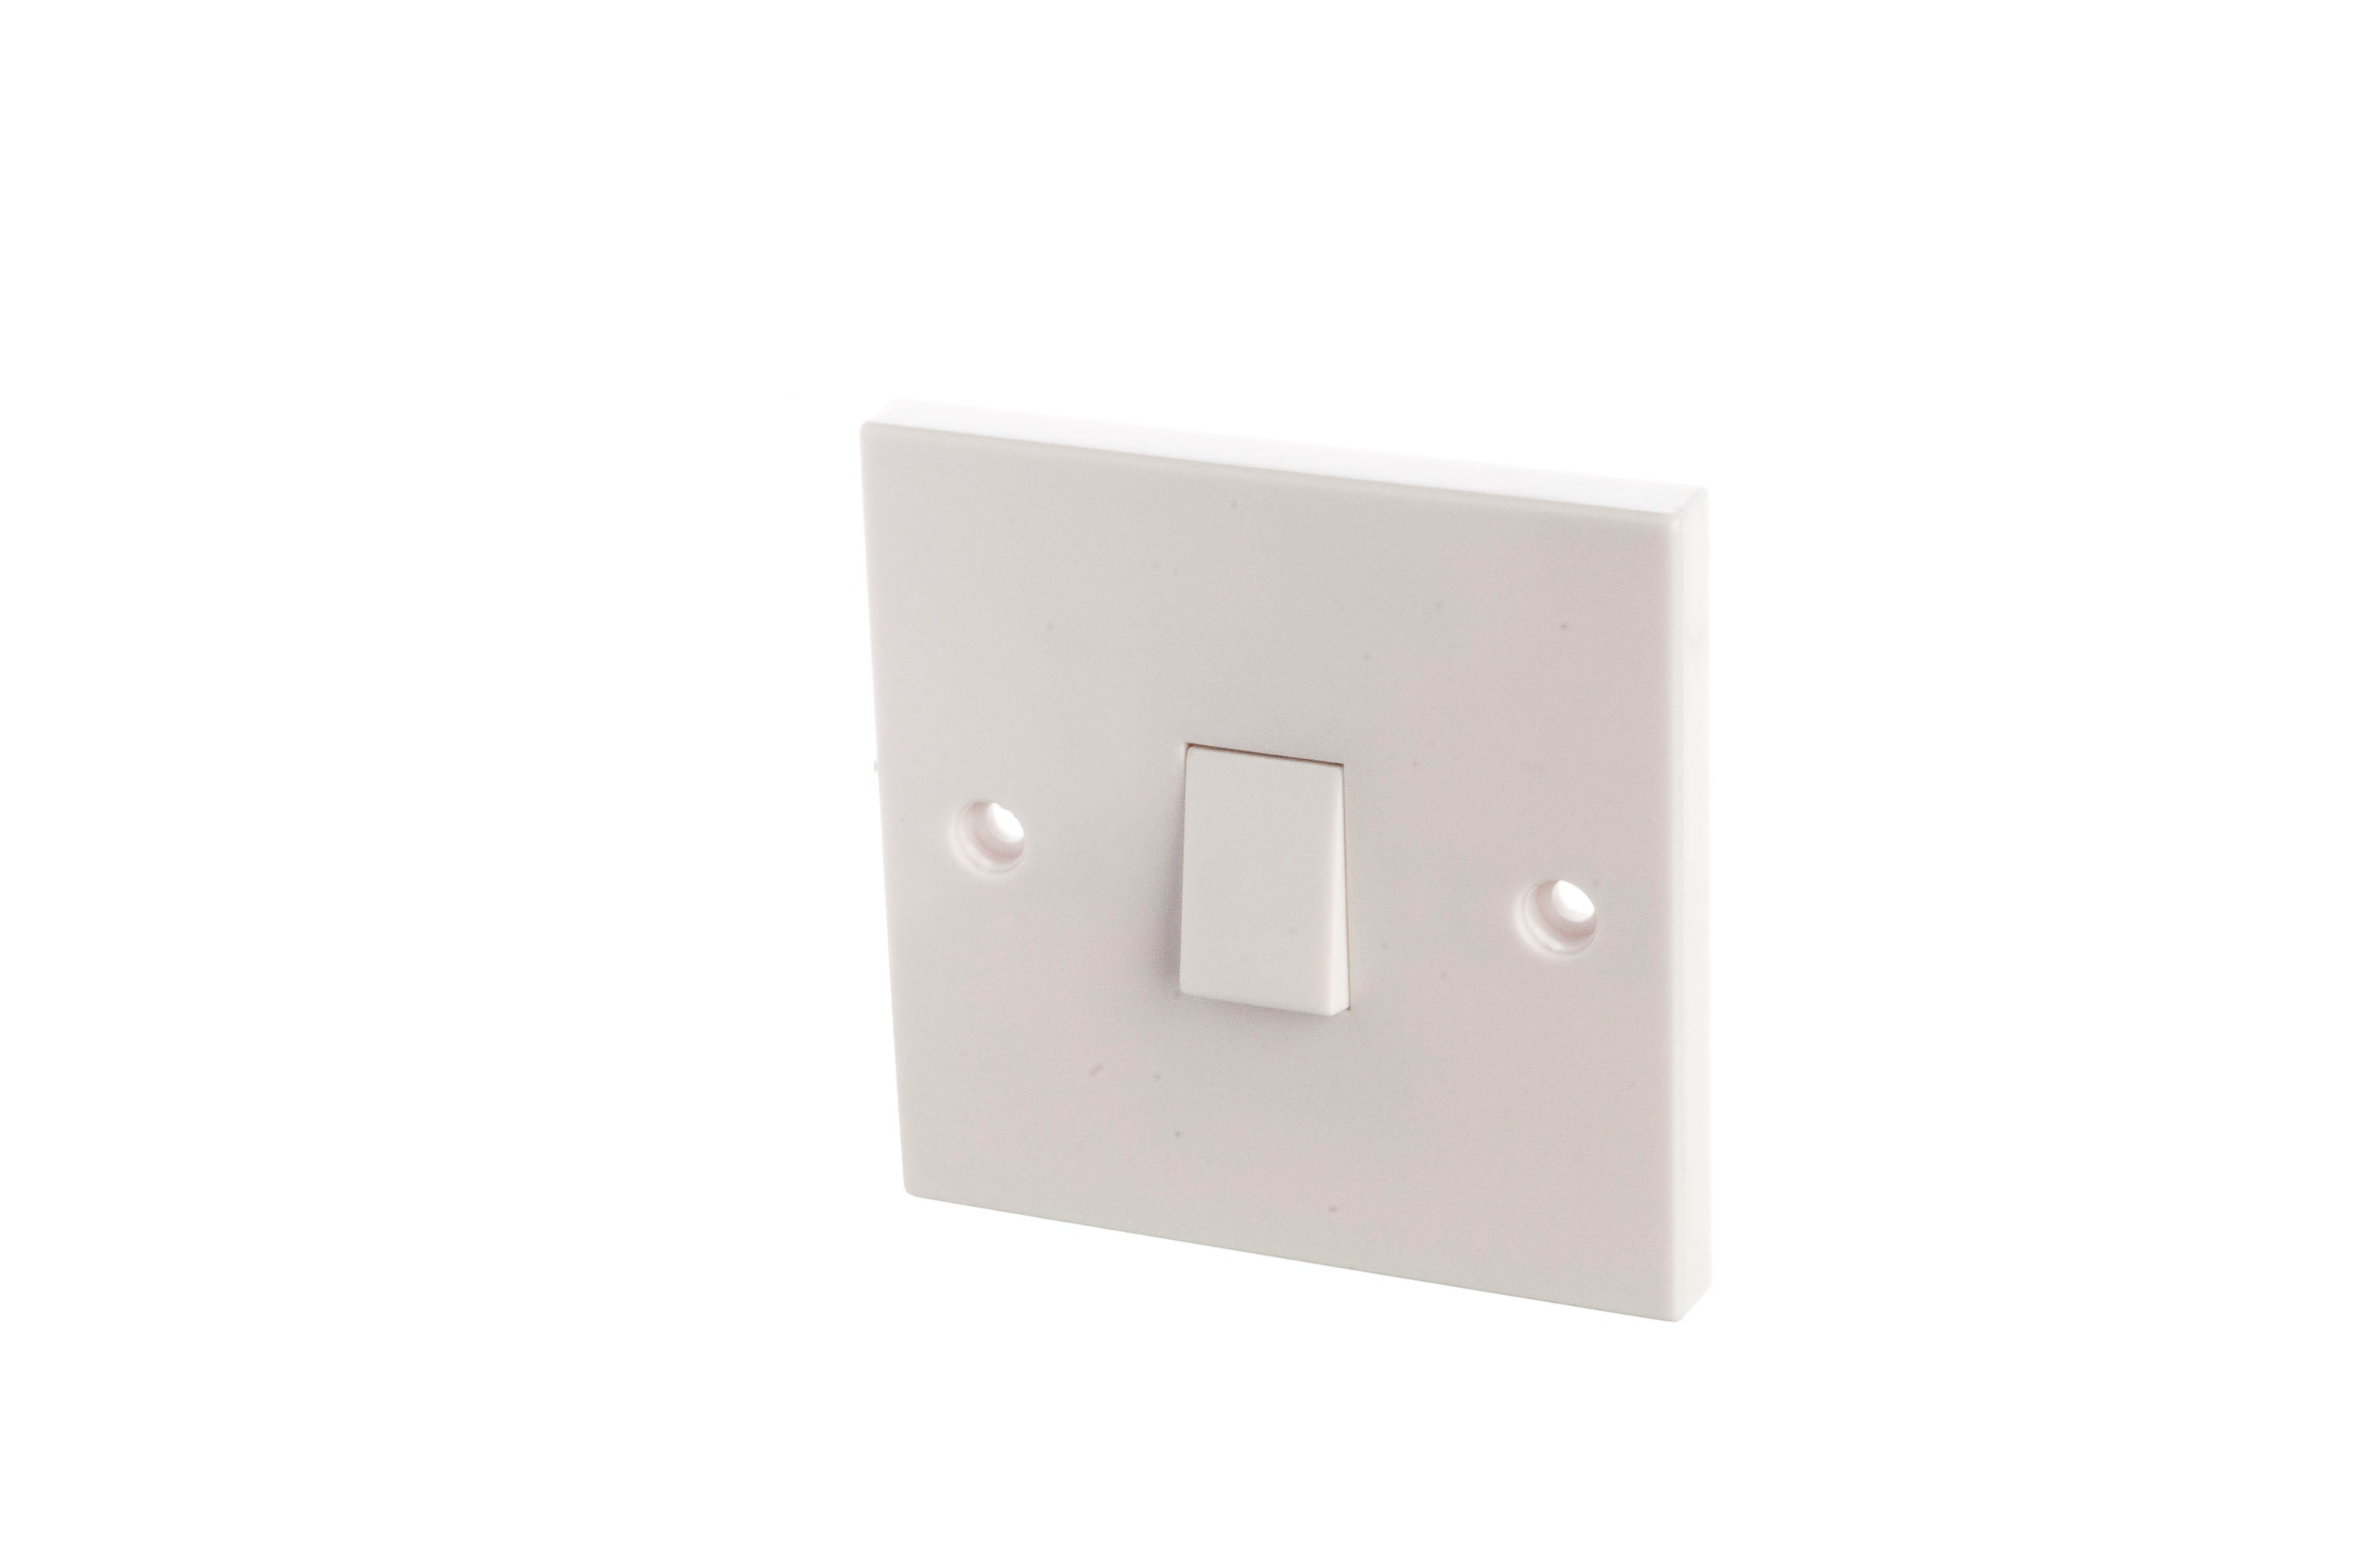 Powermaster 1 Way Switch - 13 Amp 1 Gang | Switches & Sockets ...